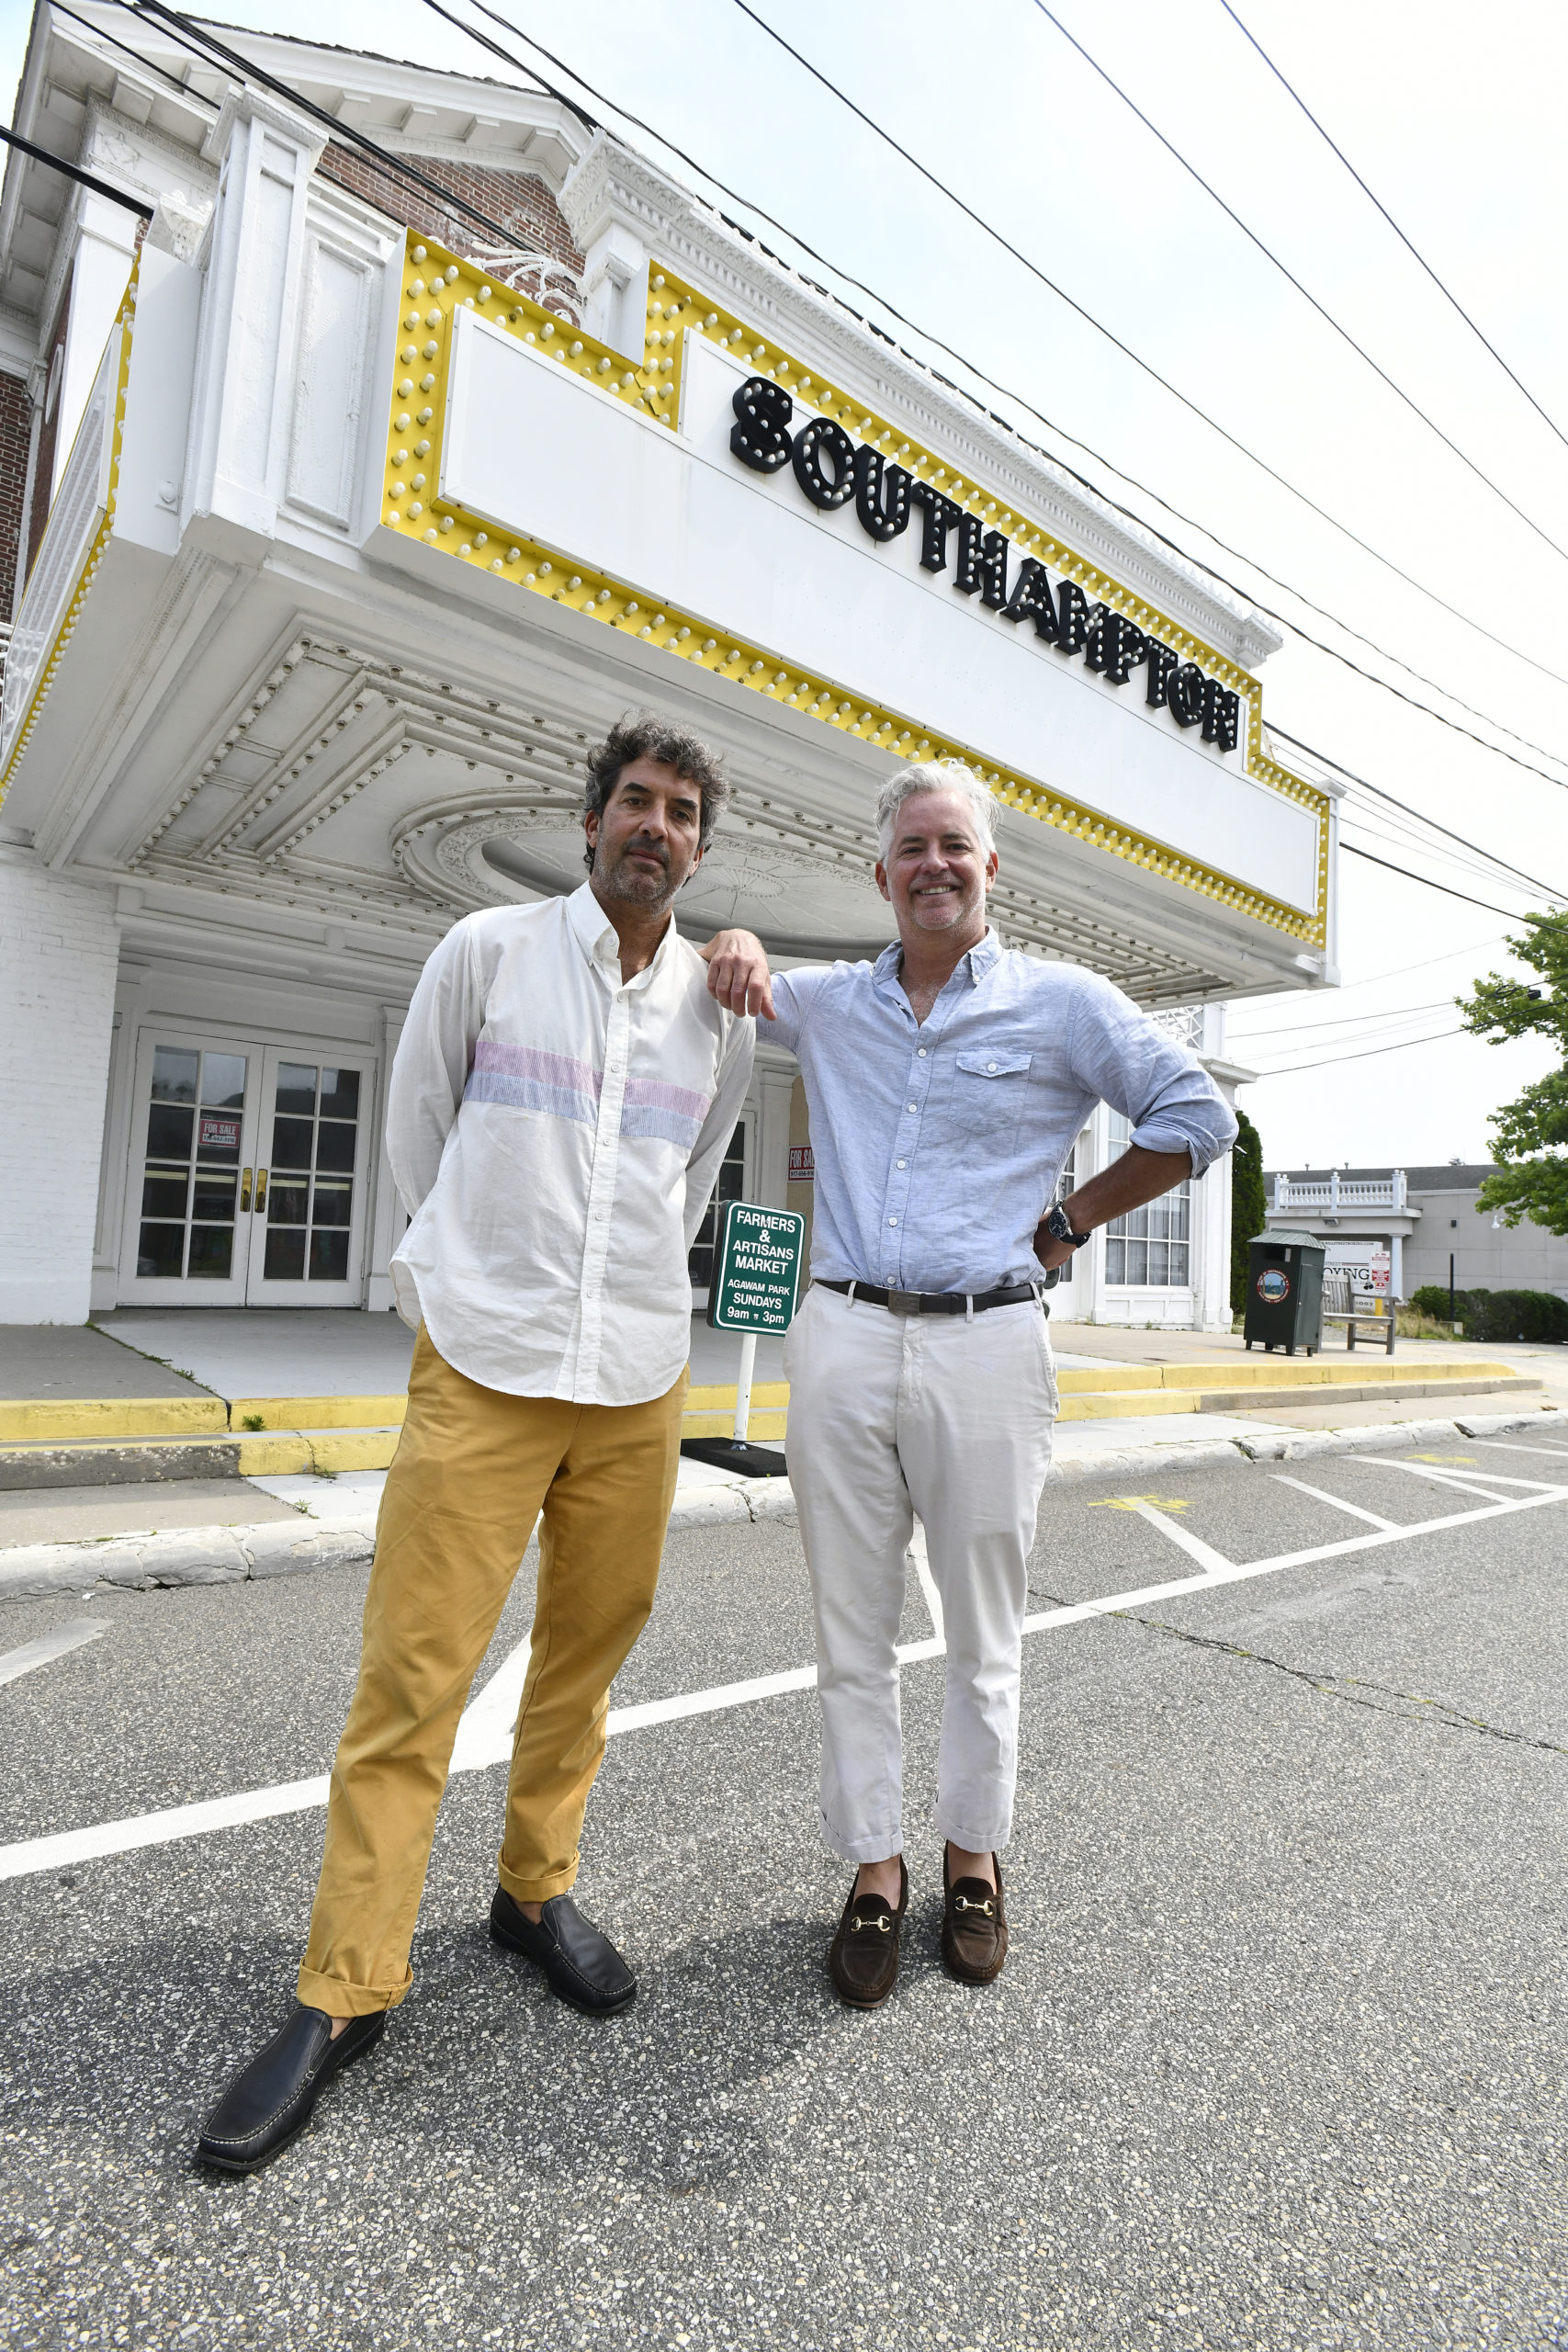 Orson and Ben Cummings in front of the Southampton movie theater on Tuesday afternoon.  DANA SHAW